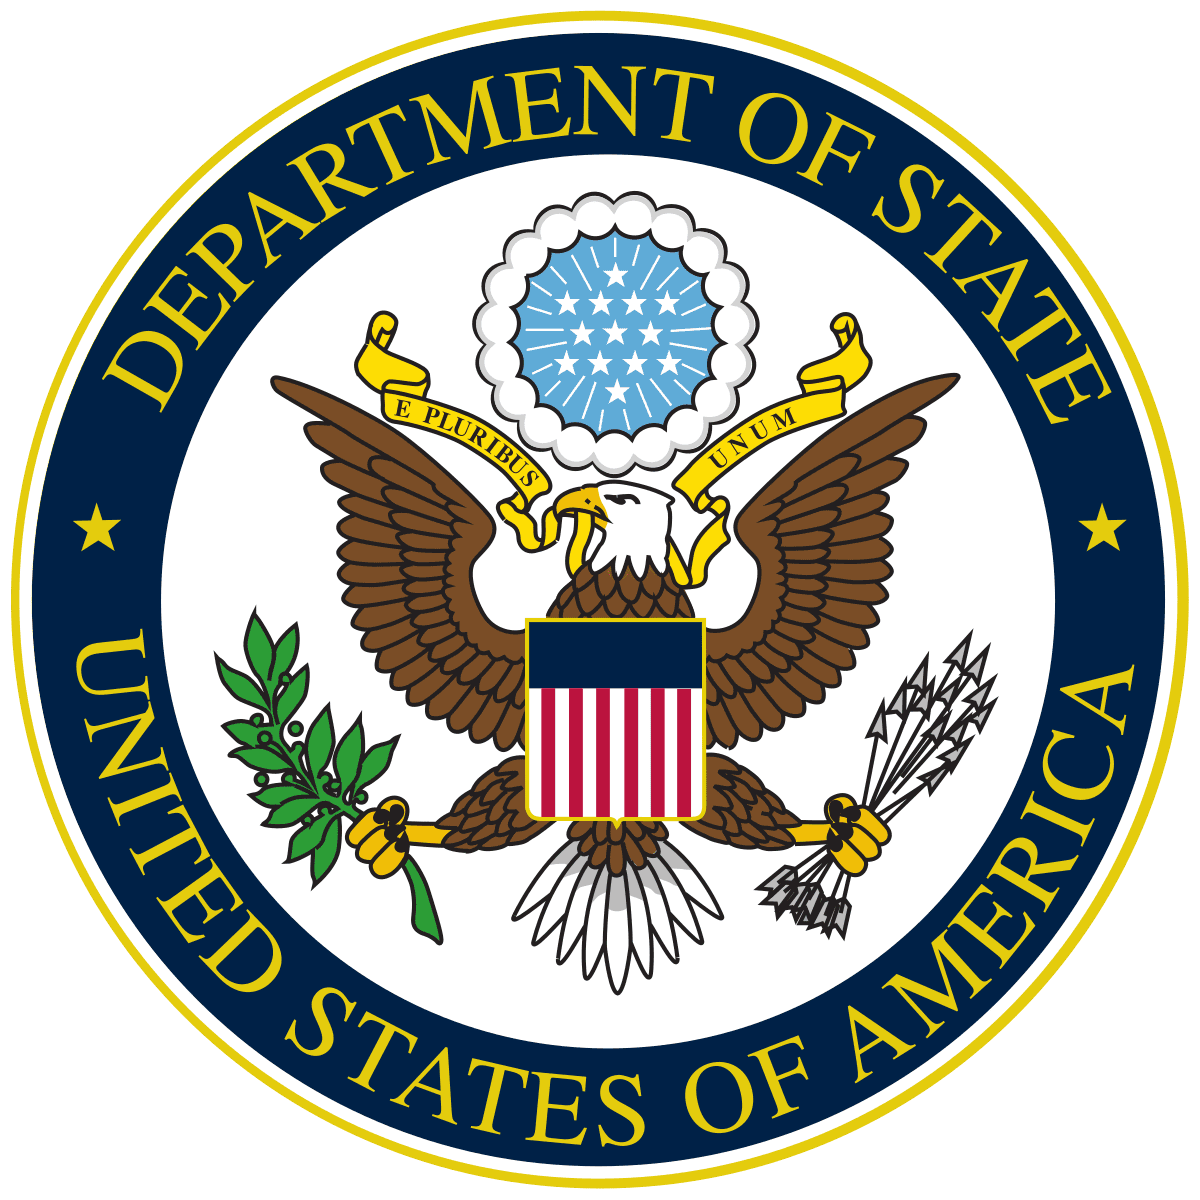 http://ve-tech.net/wp-content/uploads/2018/12/Department-of-State-1.png